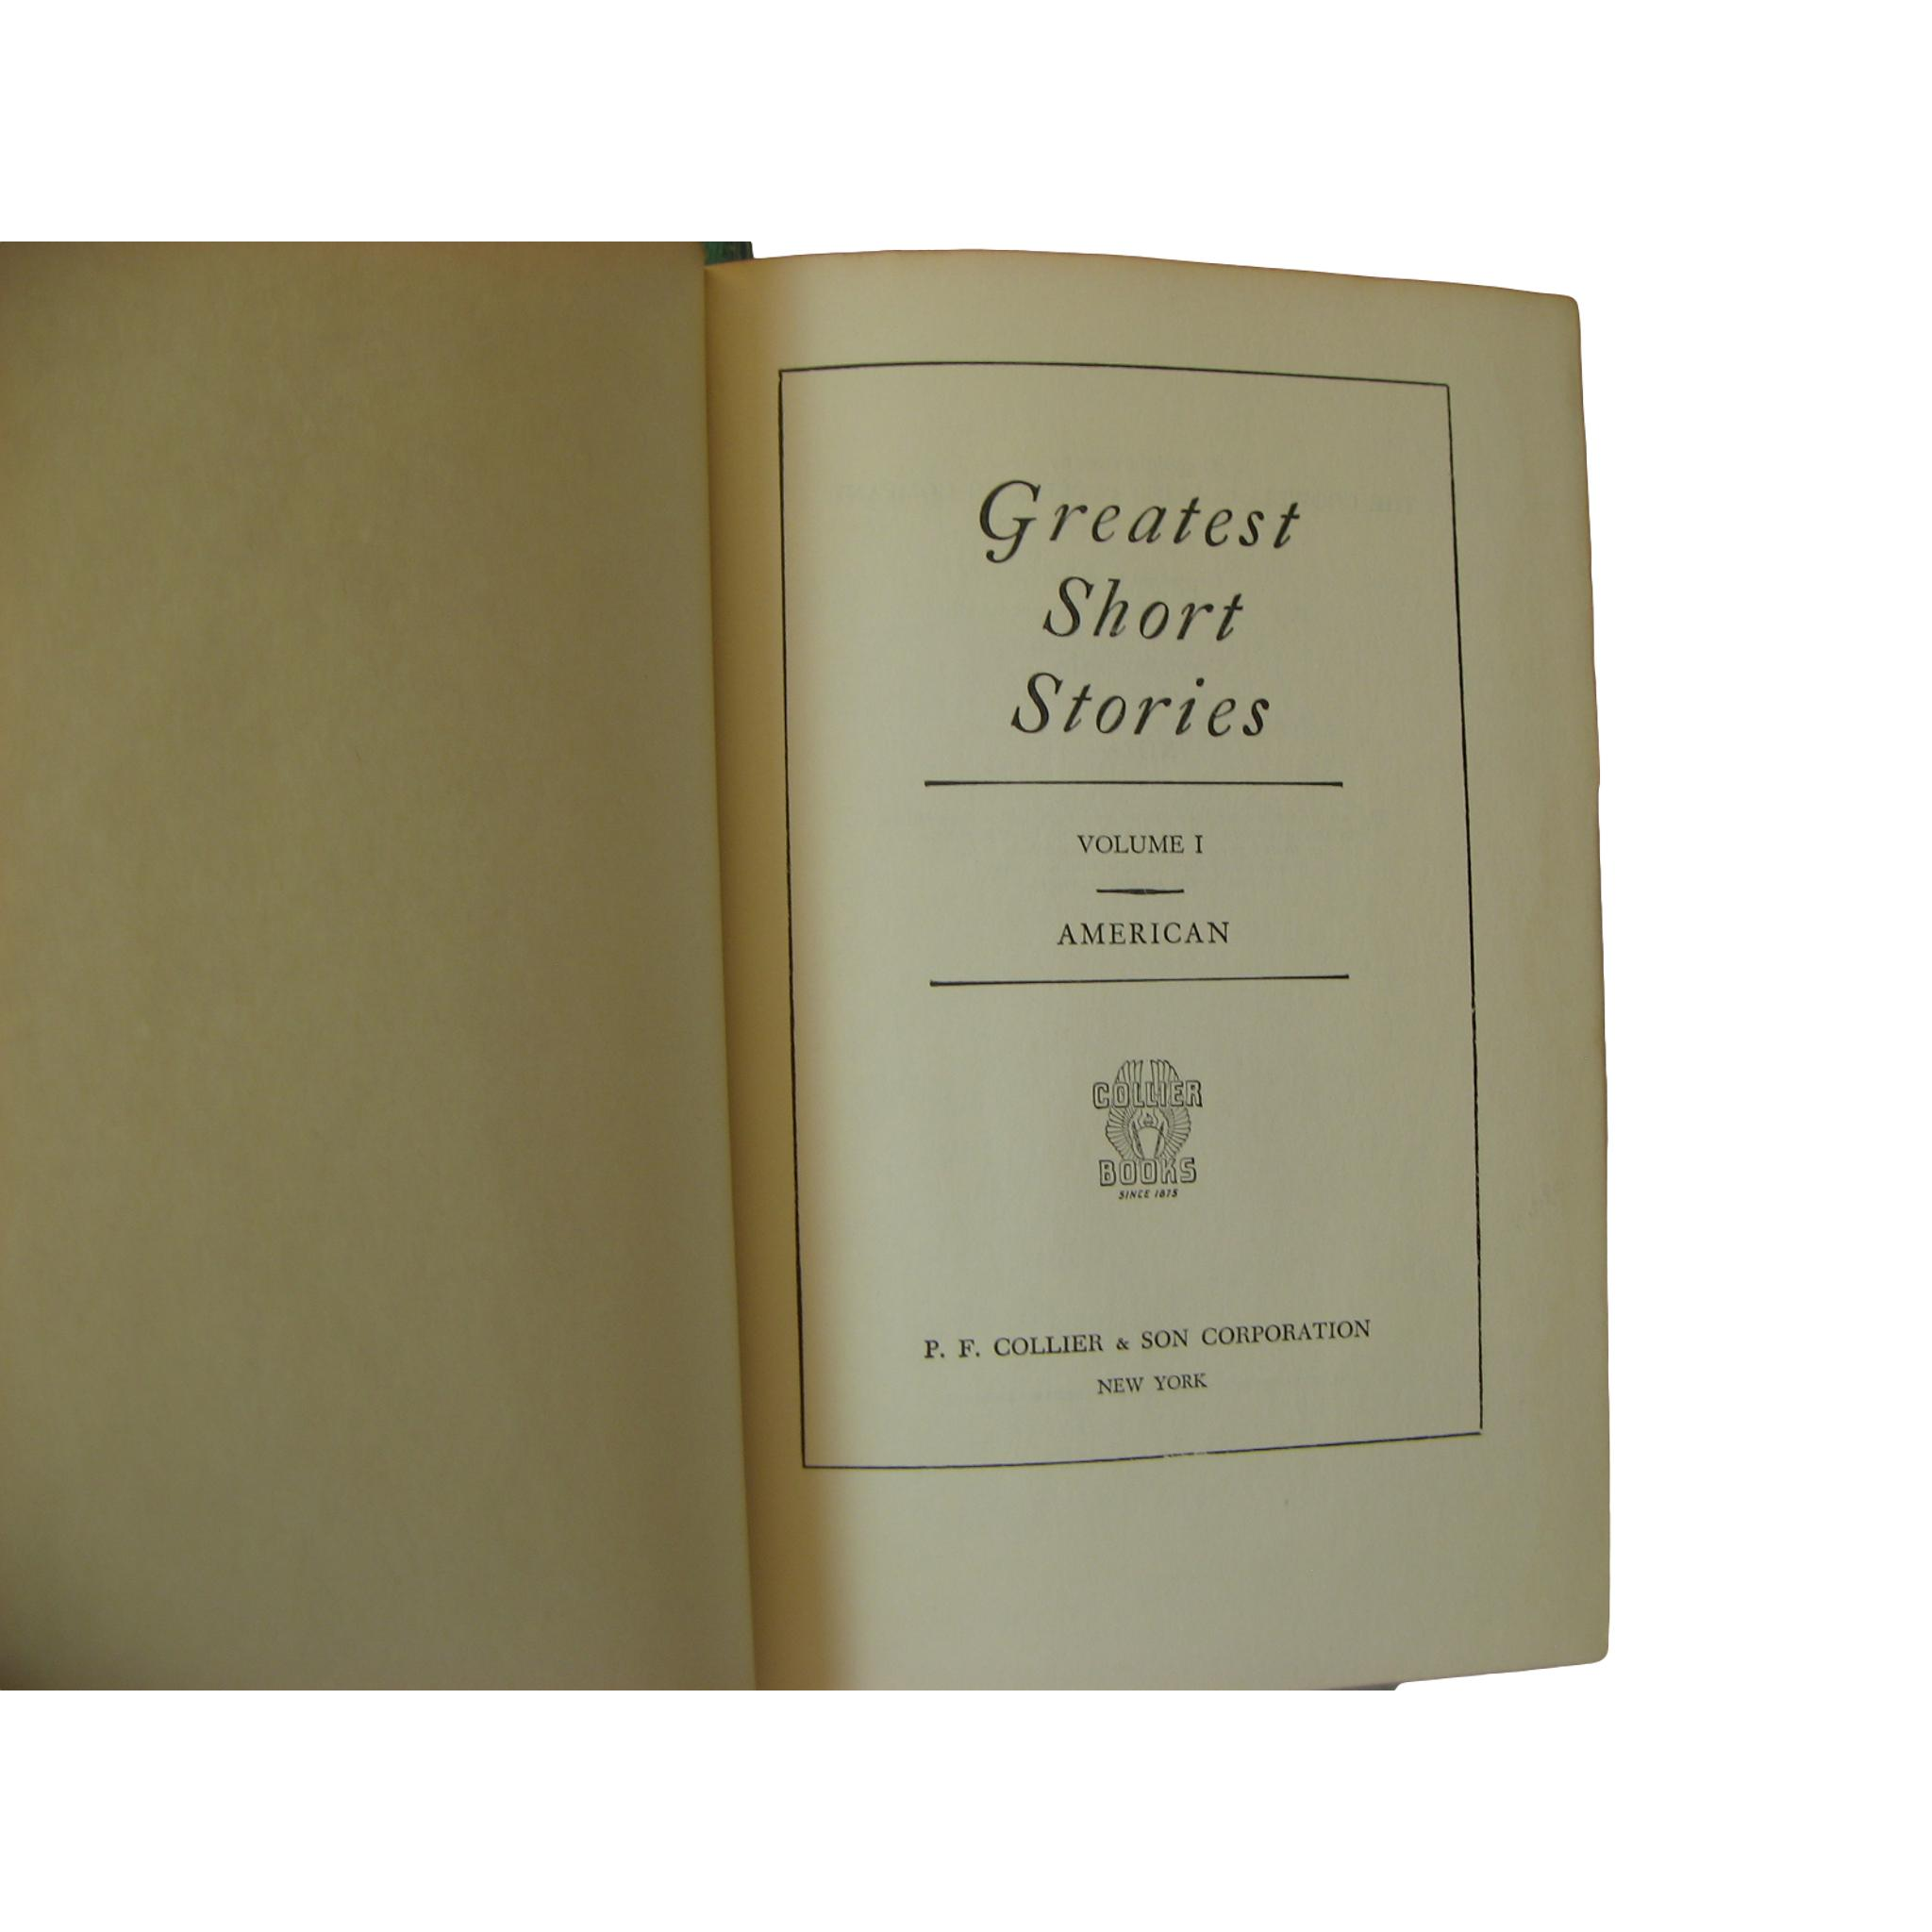 Decorative Book Stack of Greatest Short Stories for Shelf Decor, S/6